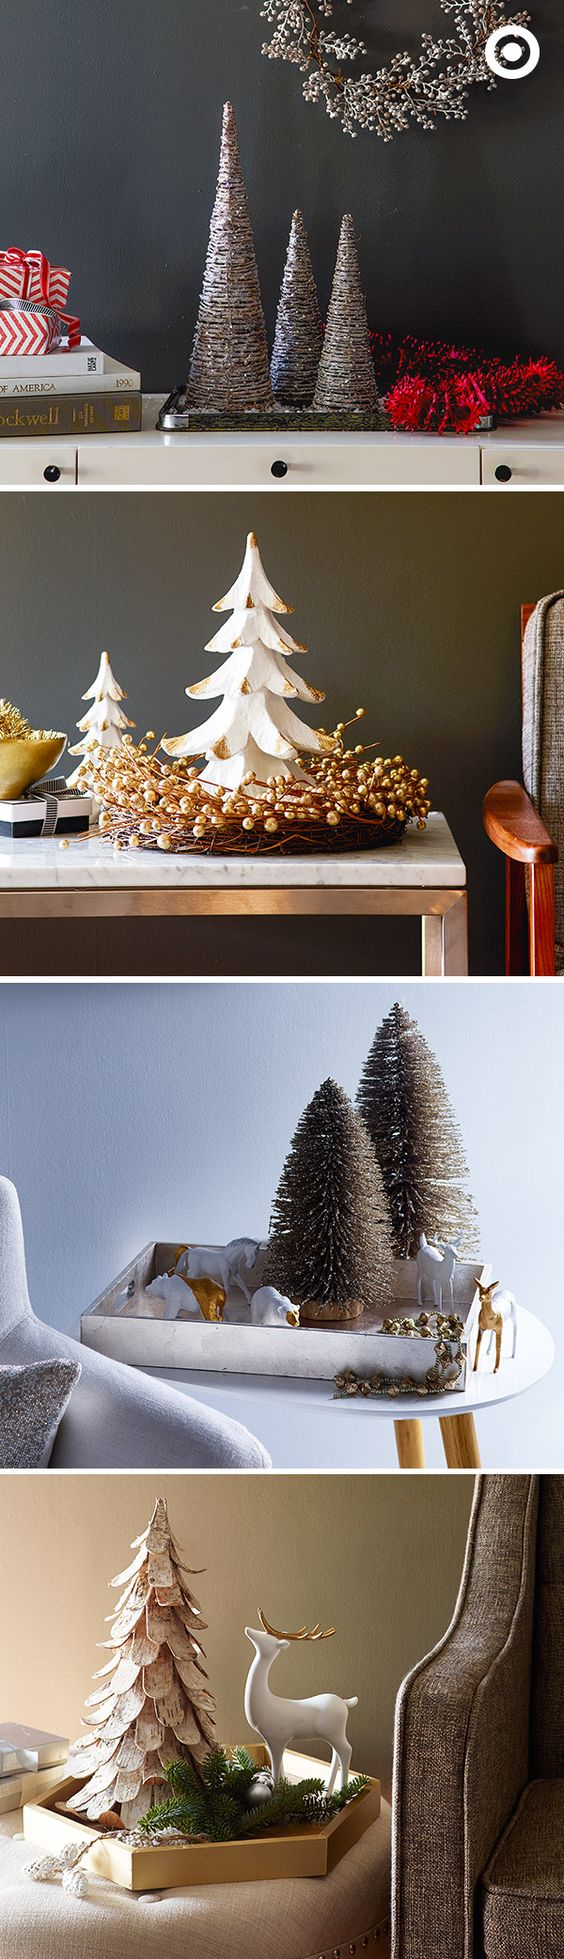 Who says you need a full-sized Christmas tree to get your home ready for the holidays? Whether you're feeling modern, traditional or somewhere in between, a mini tree and some festive décor are all it takes to create an entire holiday scene on a tray.